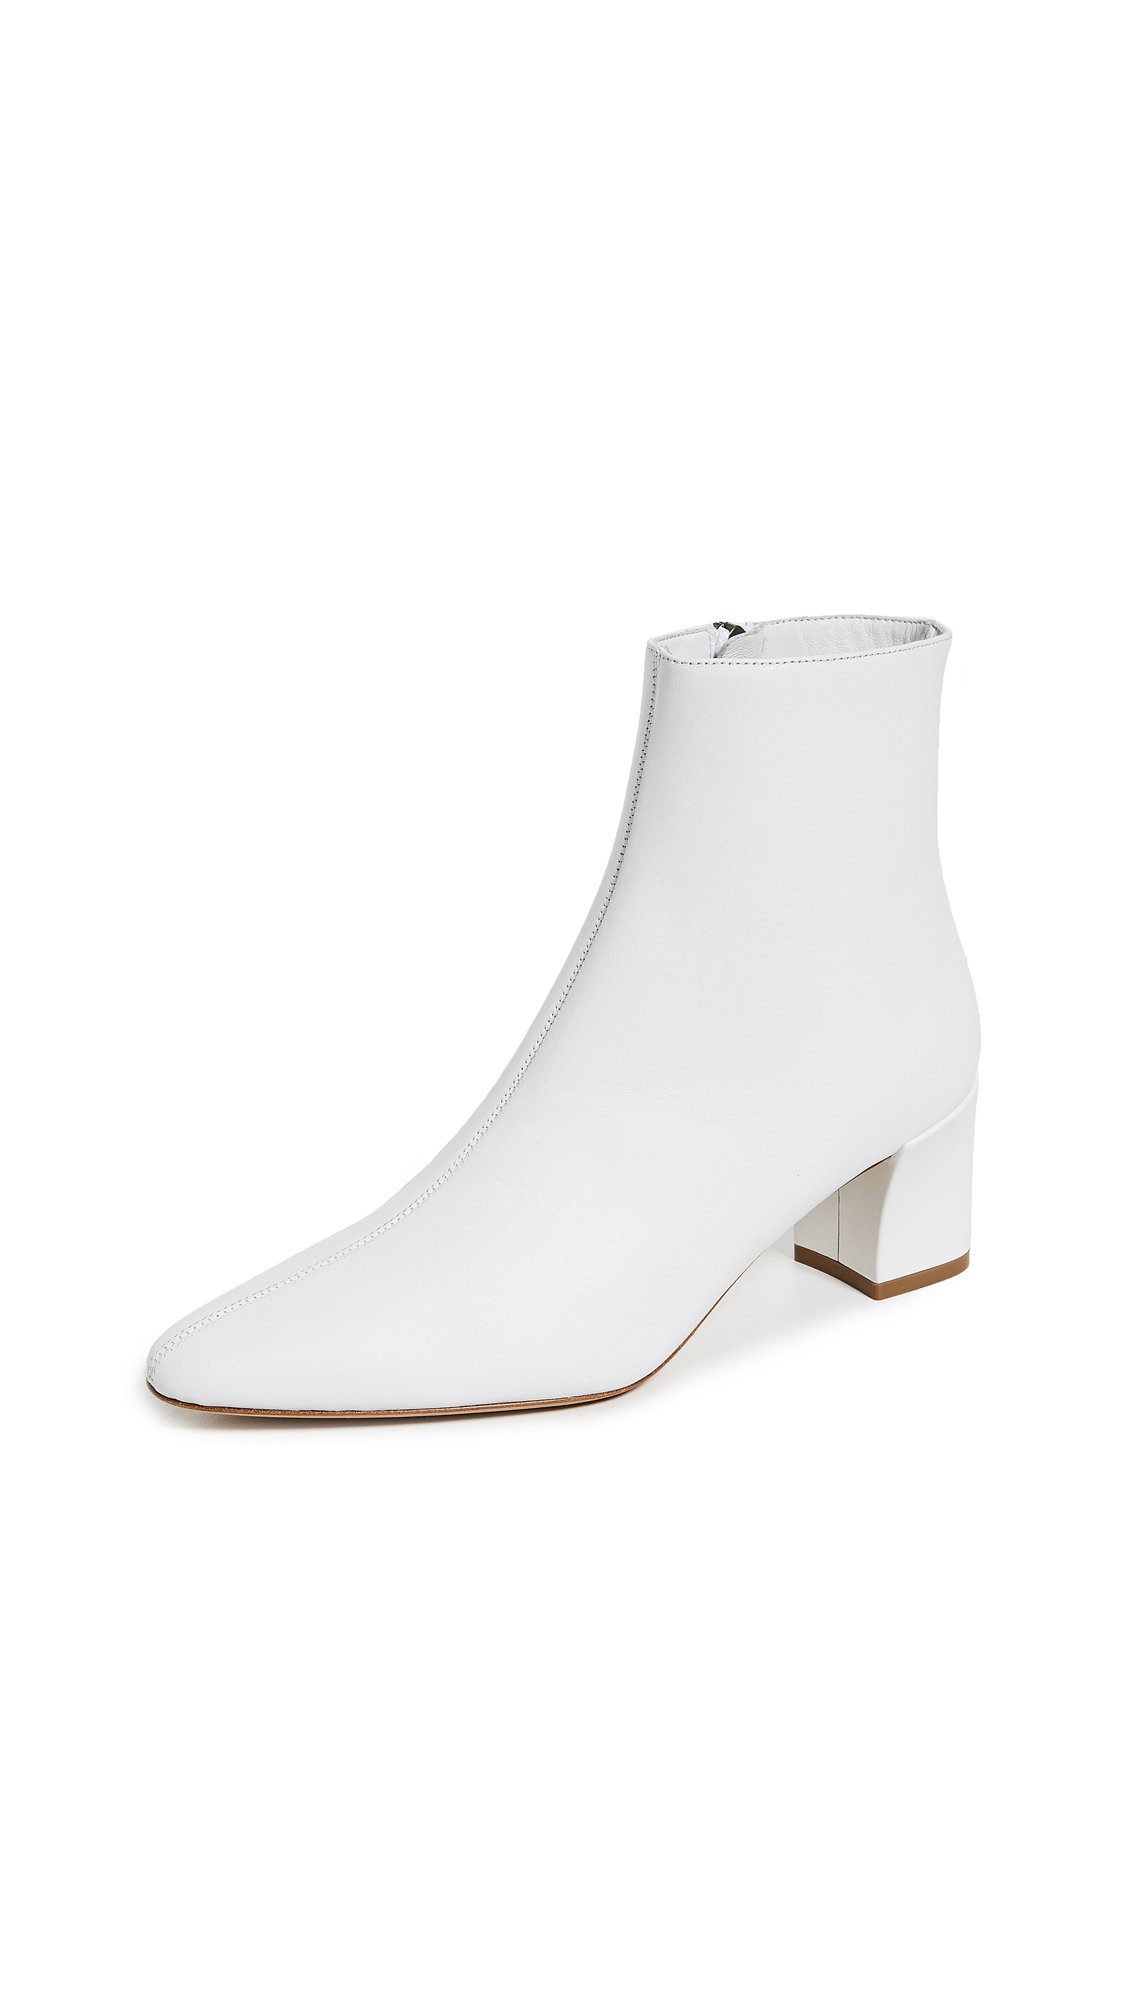 Vince Lanica Booties - White